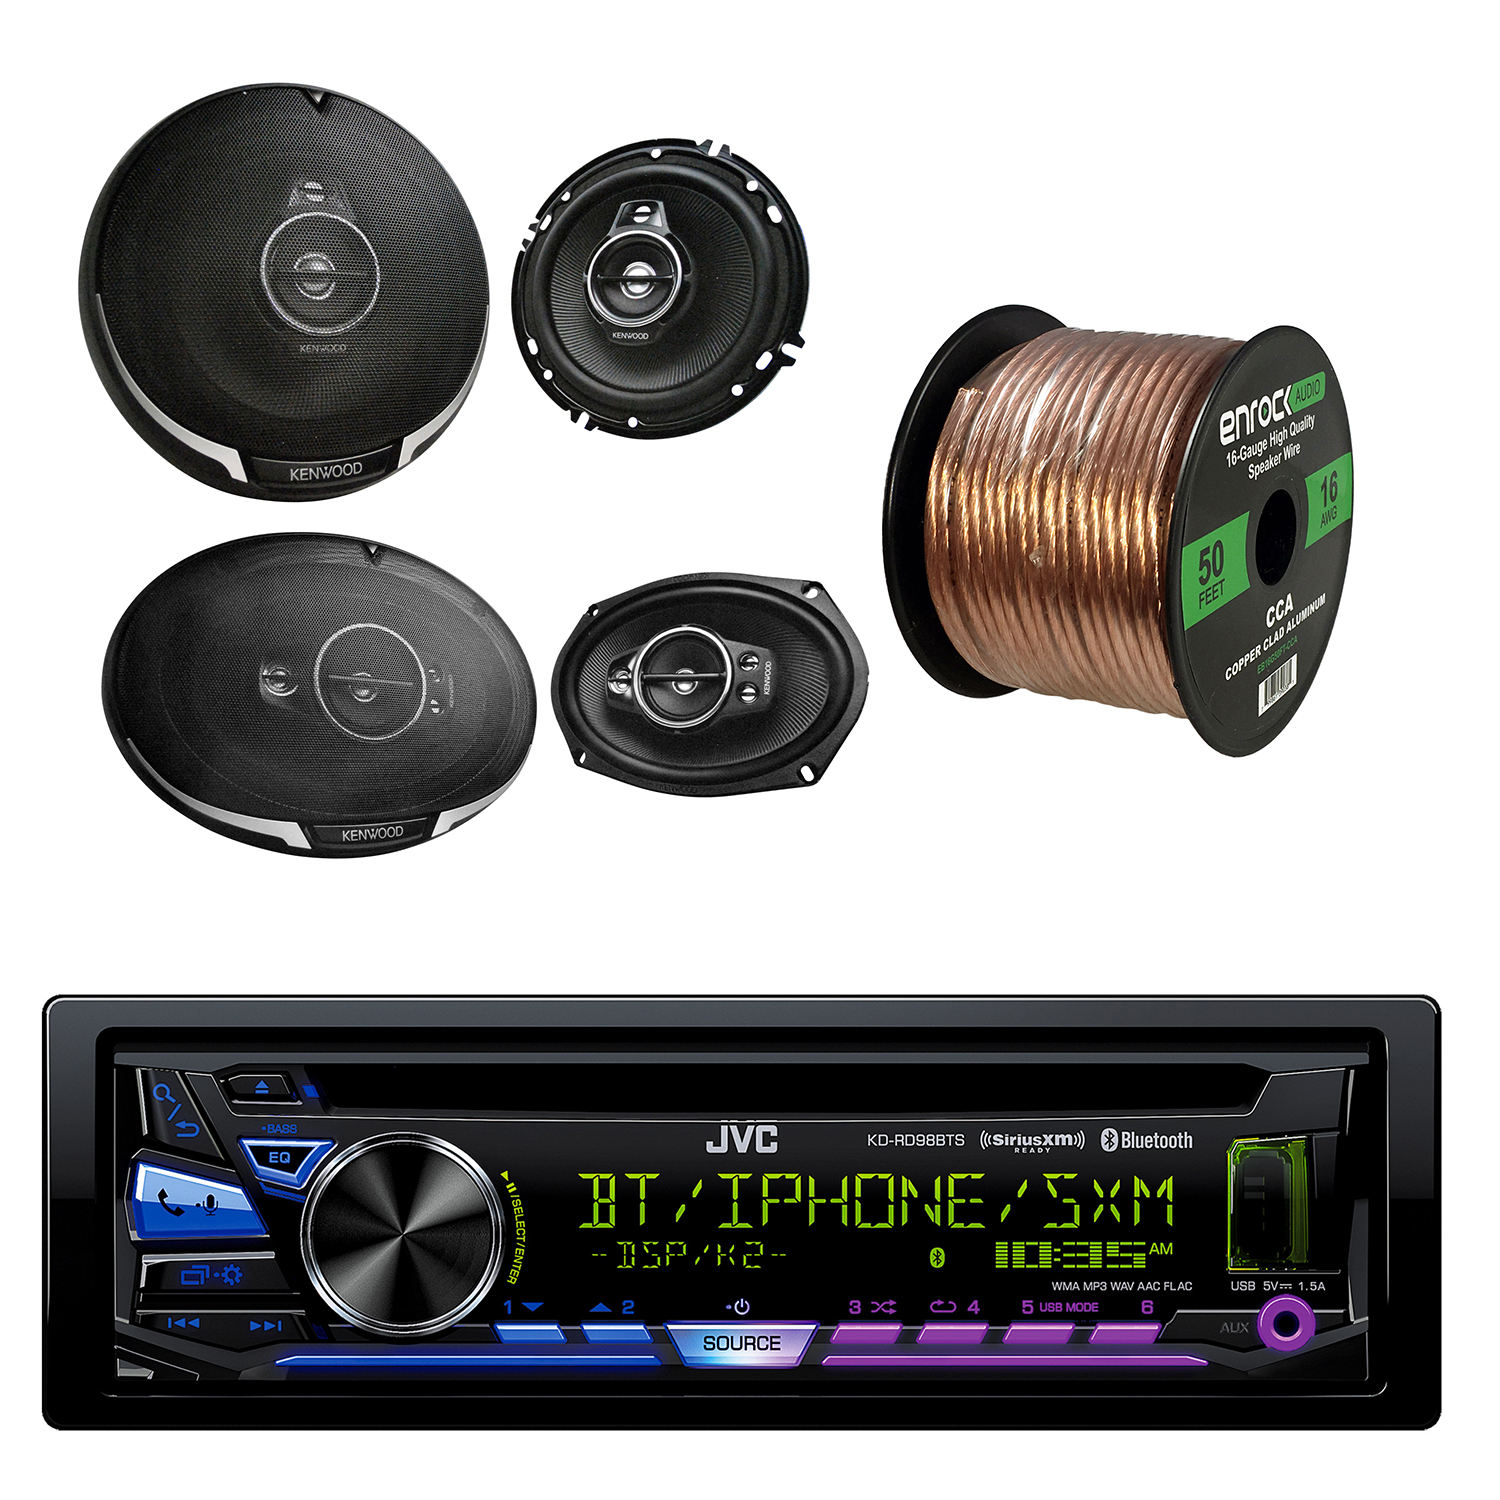 "JVC 1-DIN Bluetooth CD/AM/FM Car Stereo with Kenwood KFC-1695PS 3-way 320W Car Speakers(Pair), Kenwood 6X9"" 5-Way Speaker 650W(Pair) & Enrock 16-Gauge 50 Foot Speaker Wire"